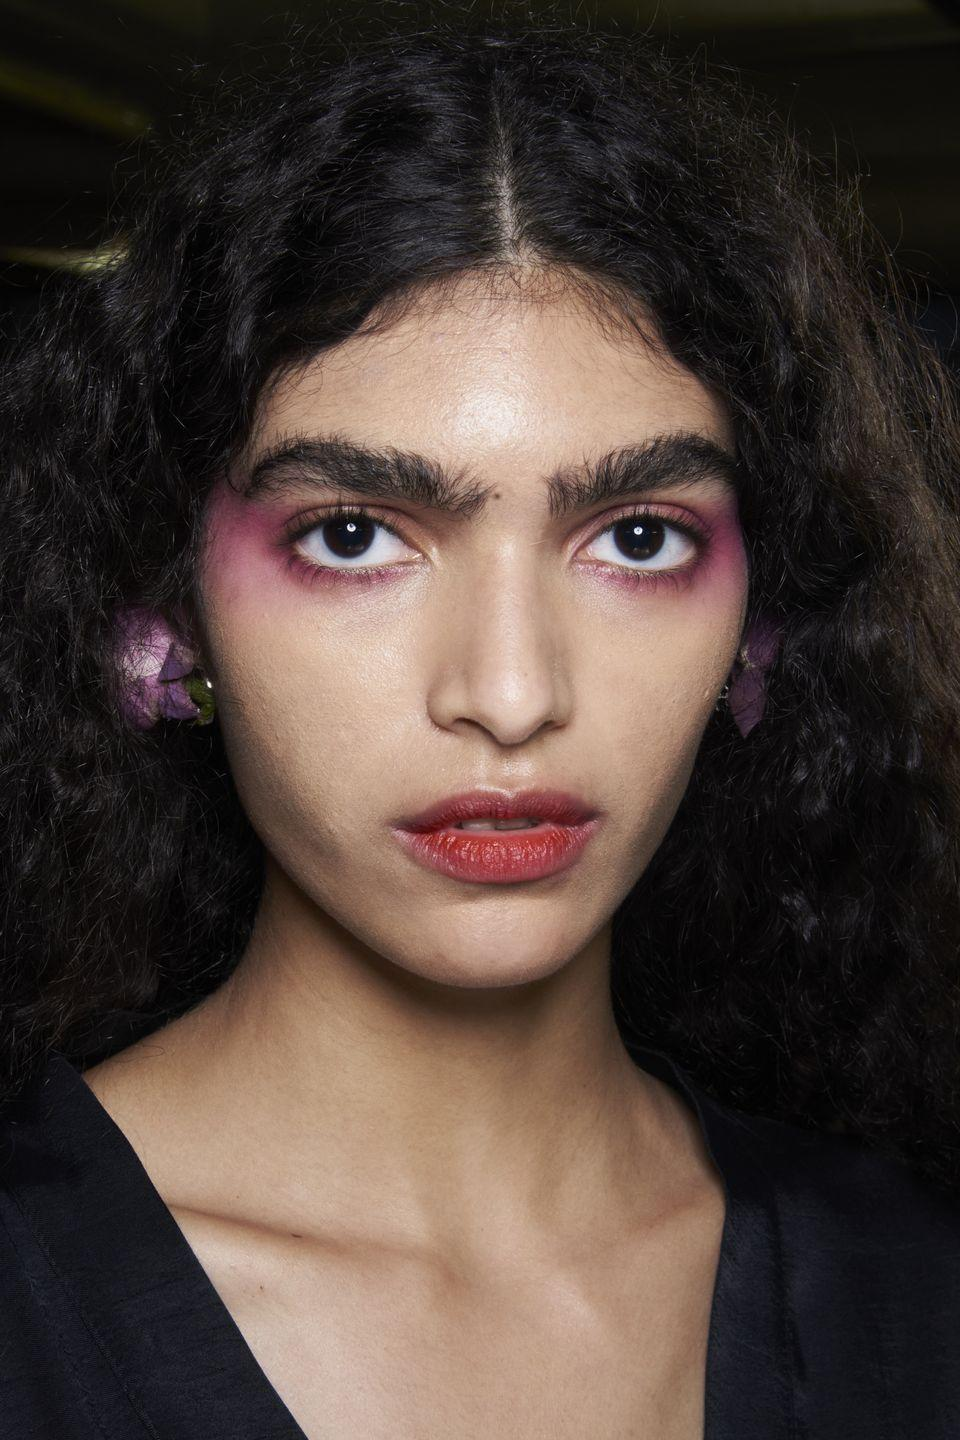 <p>Define eyes and cheekbones with a wash of 80s style pop pink blusher.</p>